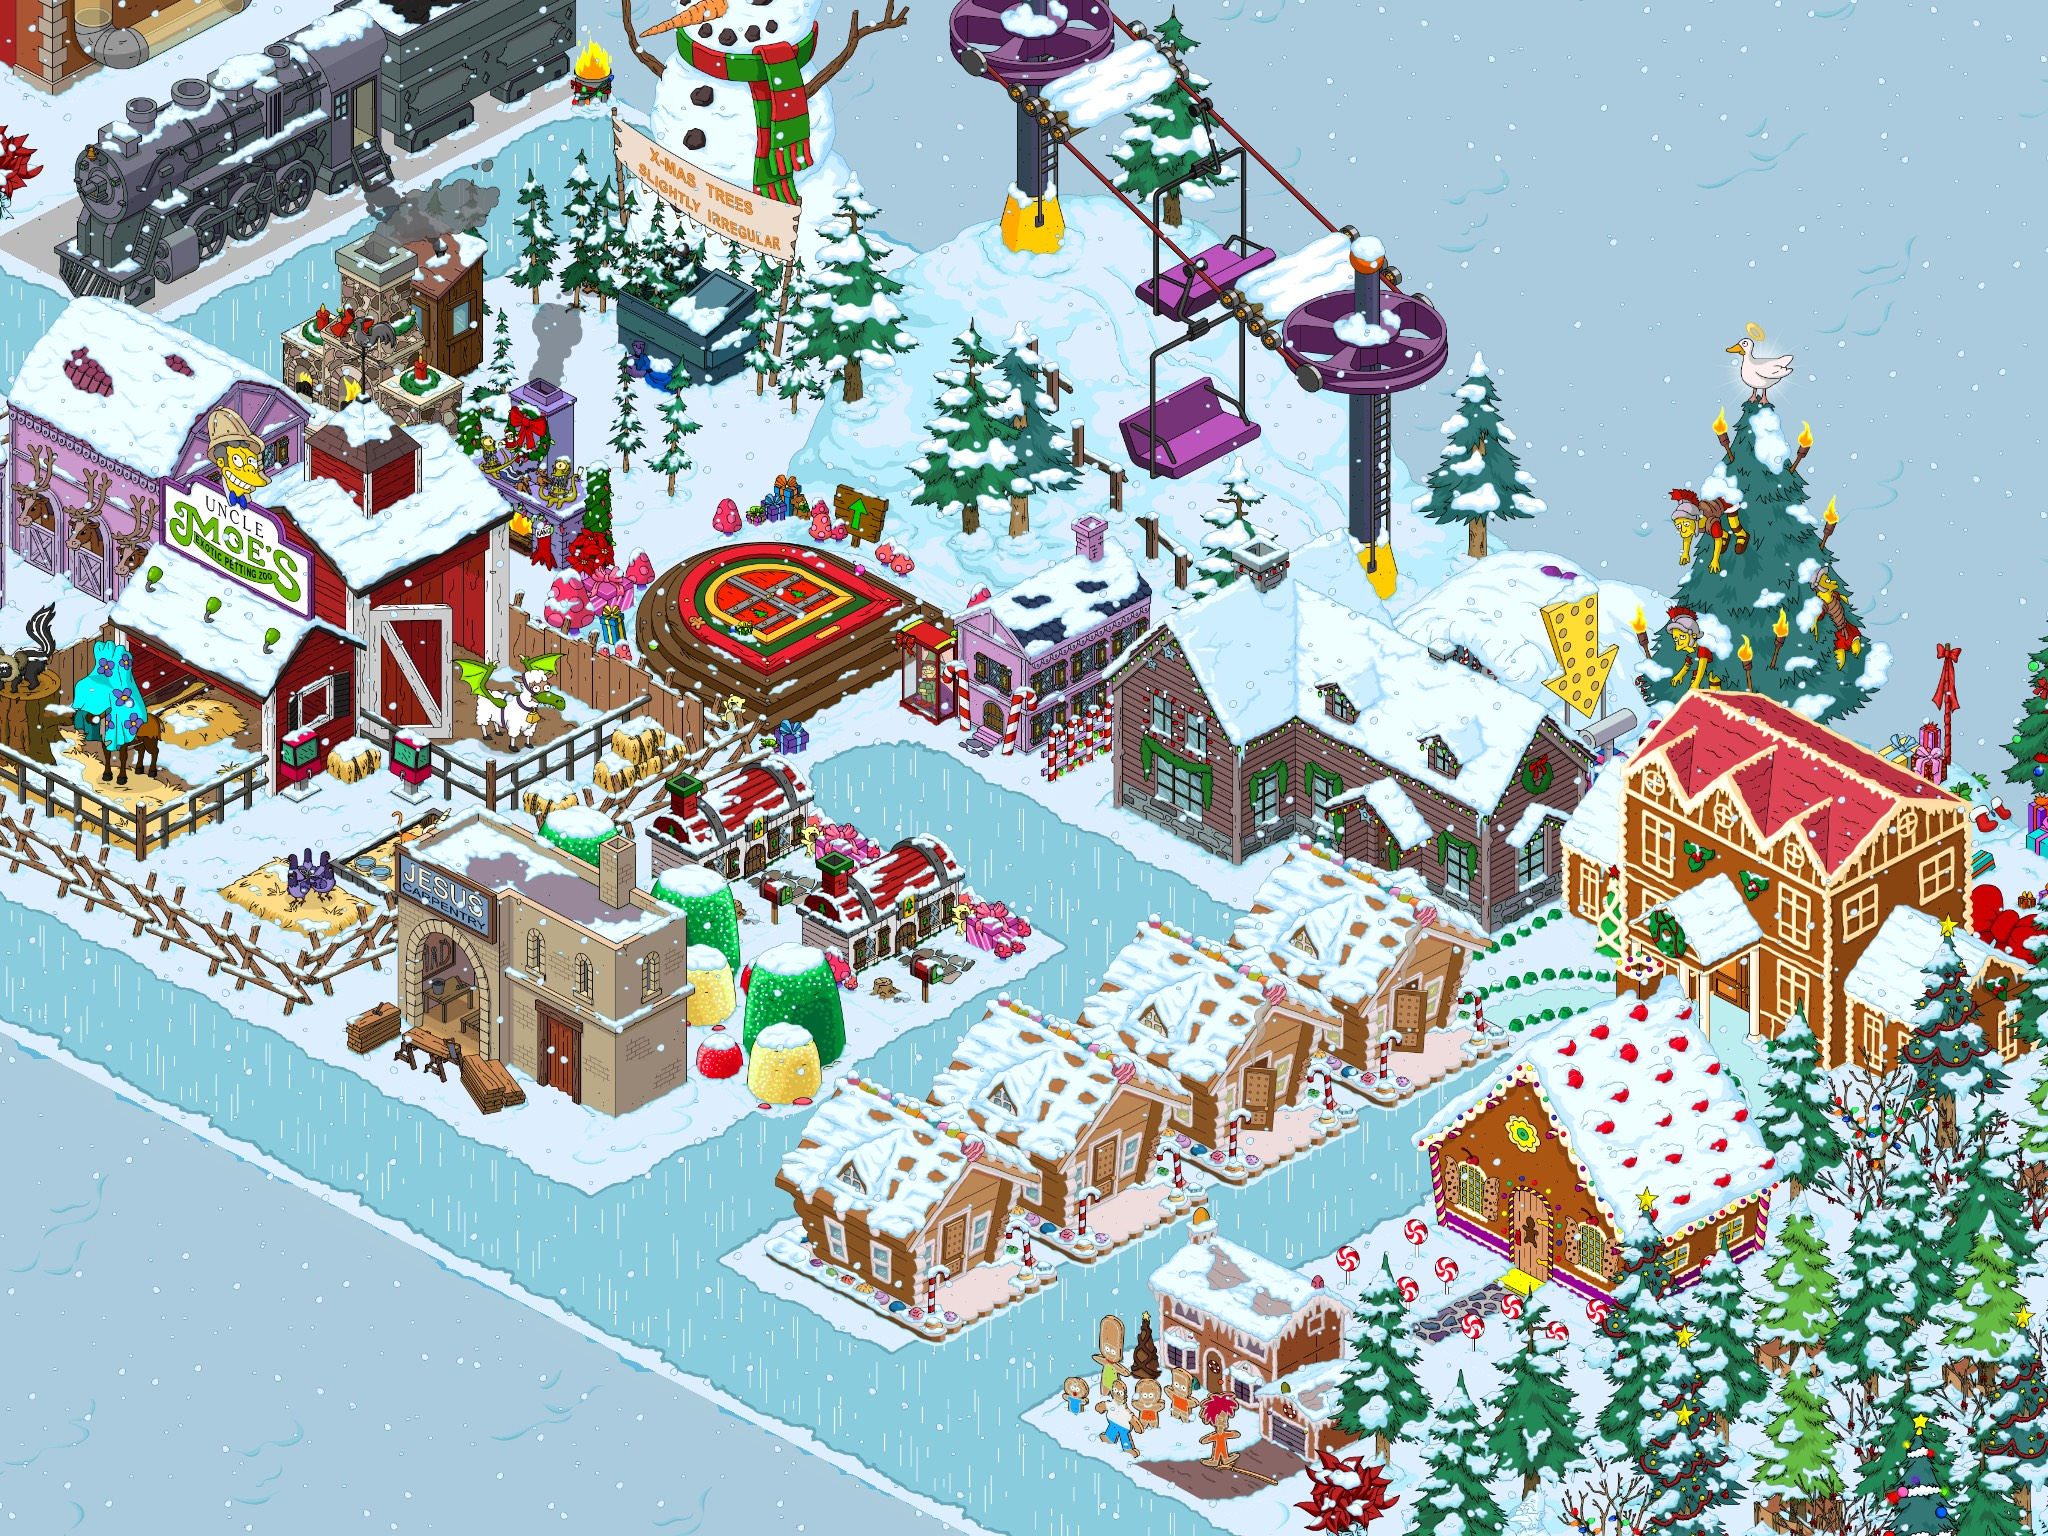 Tsto Christmas 2019 Springfield Showoff: Christmas 2018The Simpsons Tapped Out